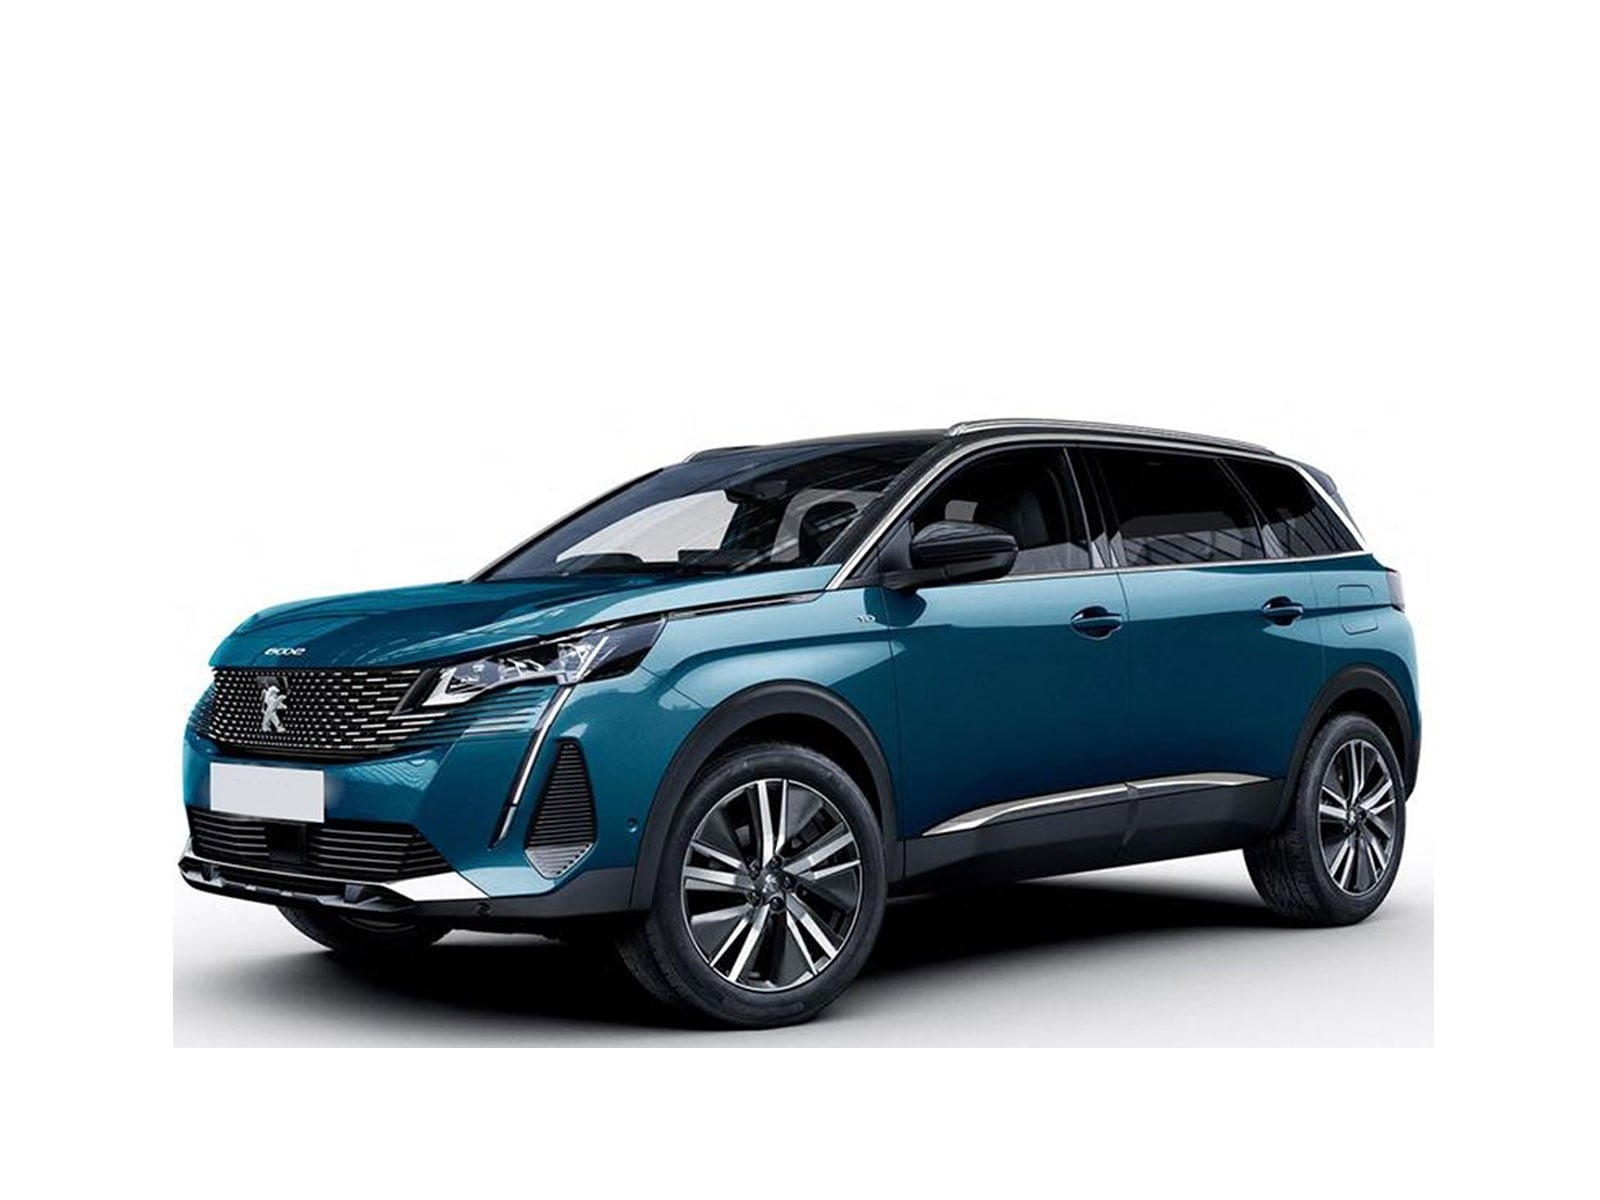 Peugeot 5008 Blue Lease Active PureTech 130 5d.